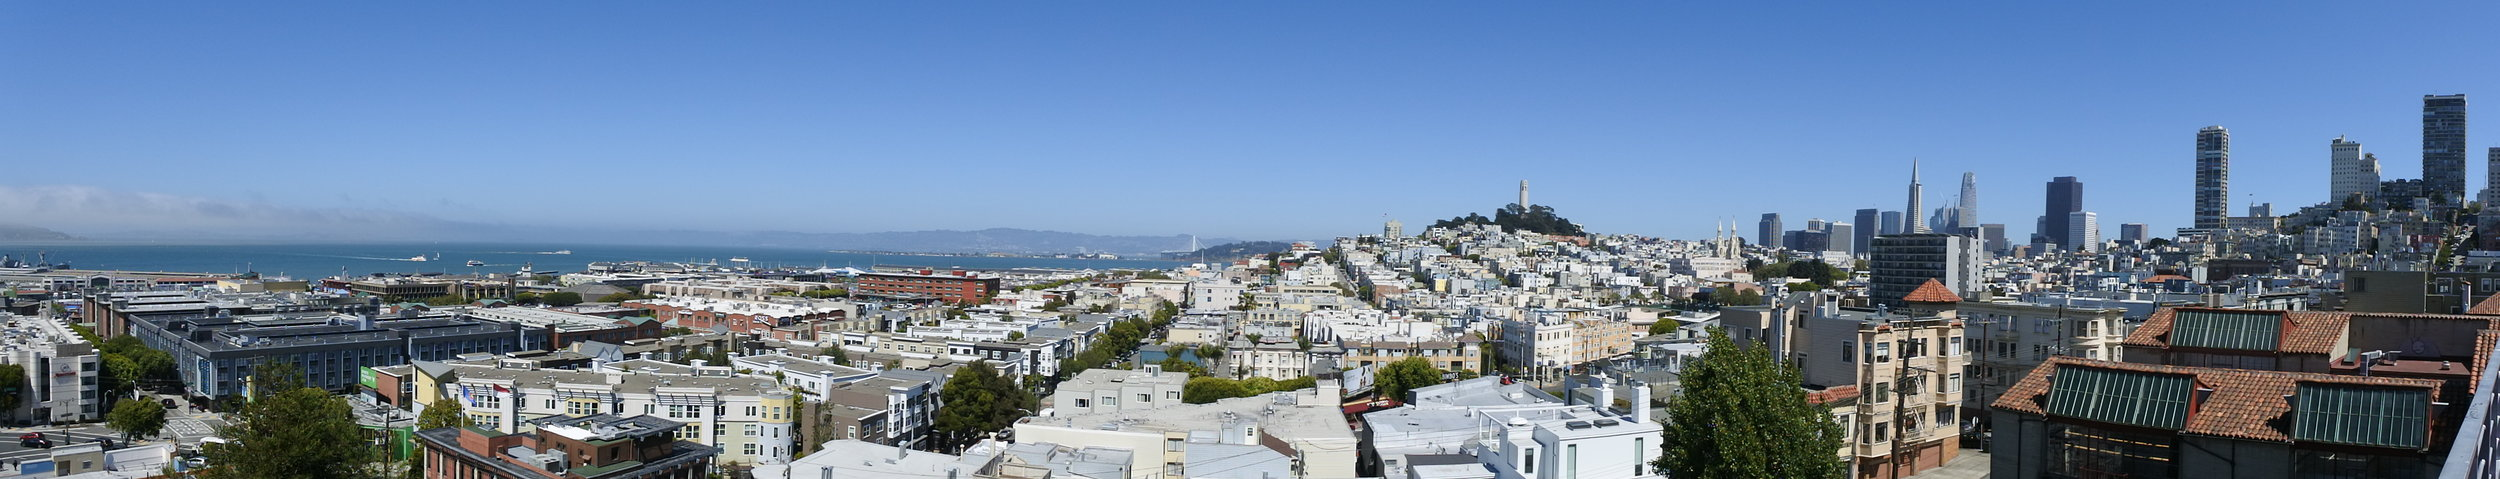 View from one of my favorite spots in SF.